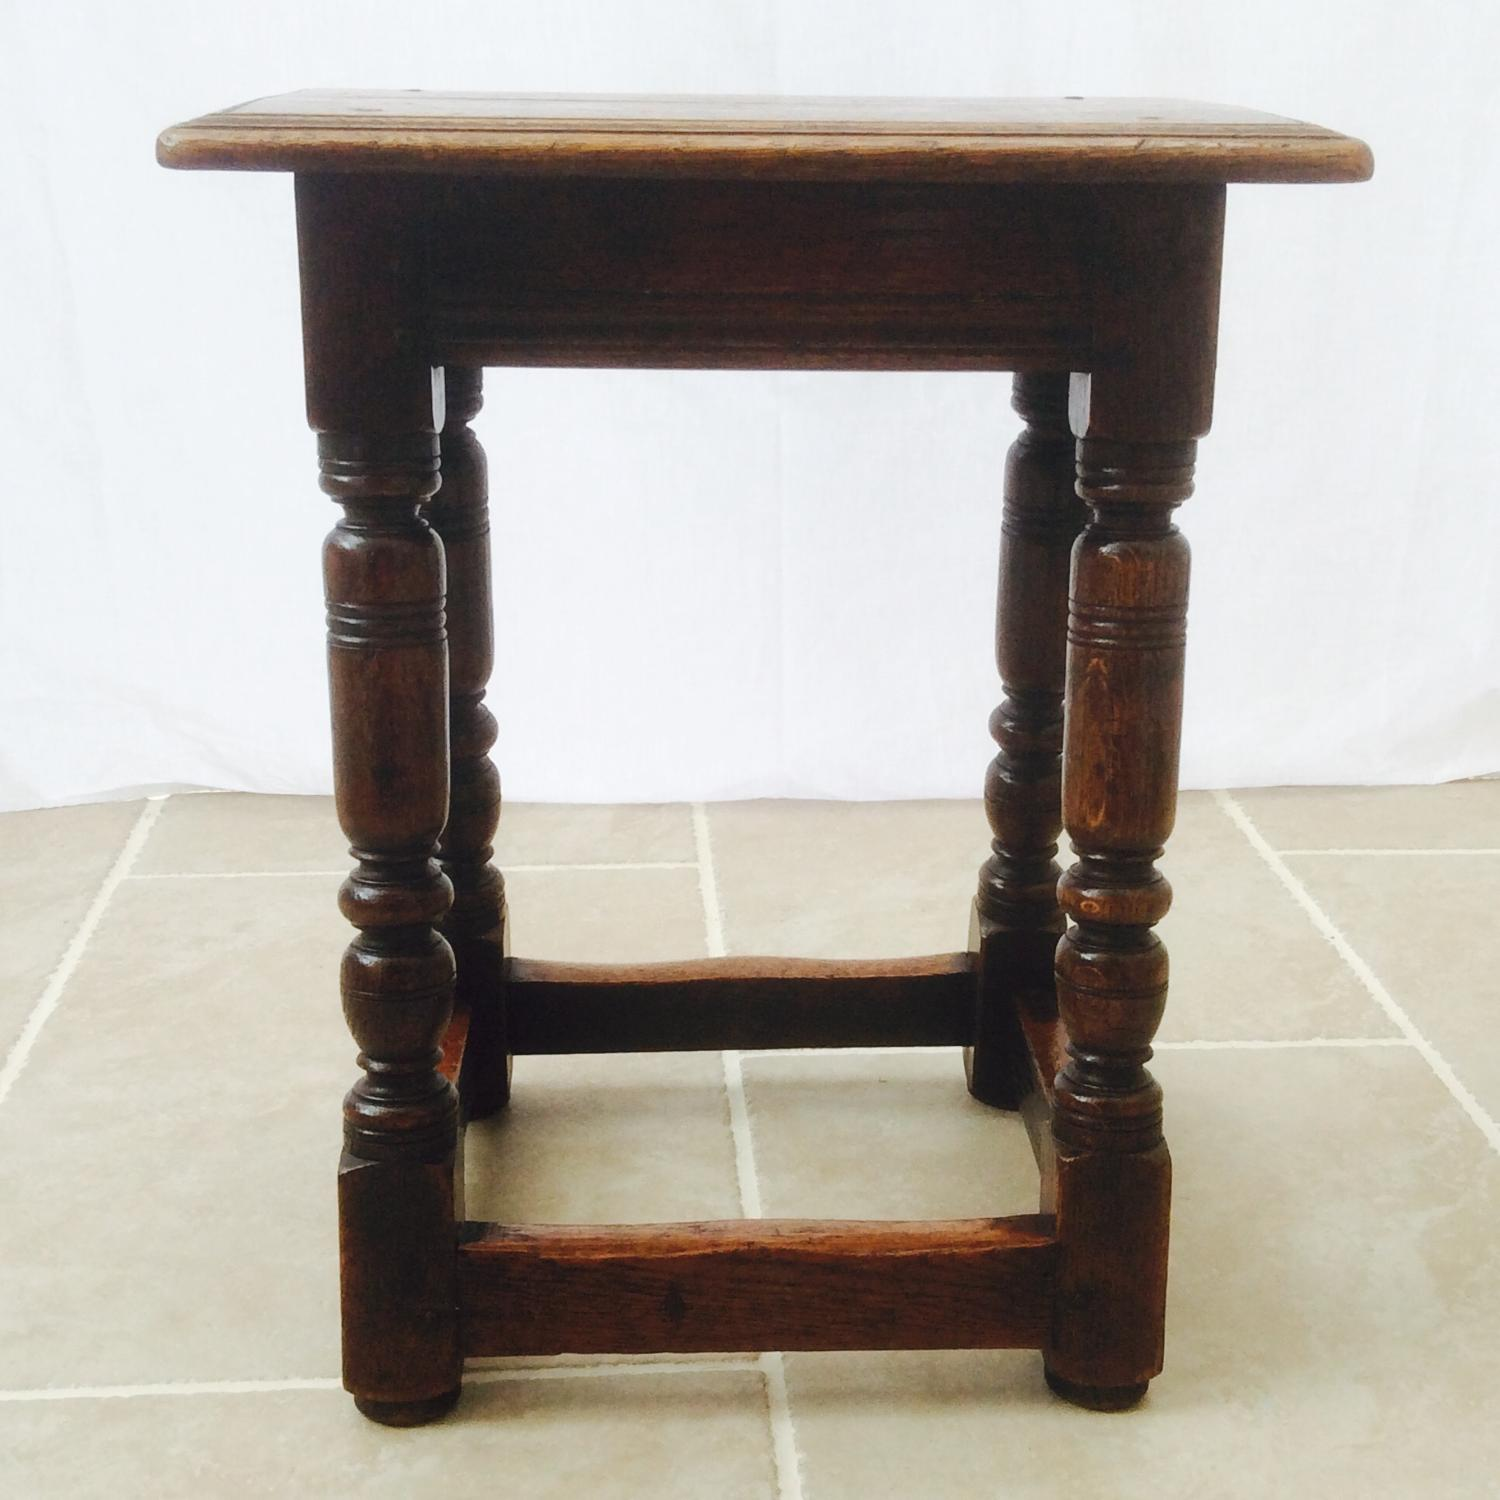 English oak 19th Century joynt stool